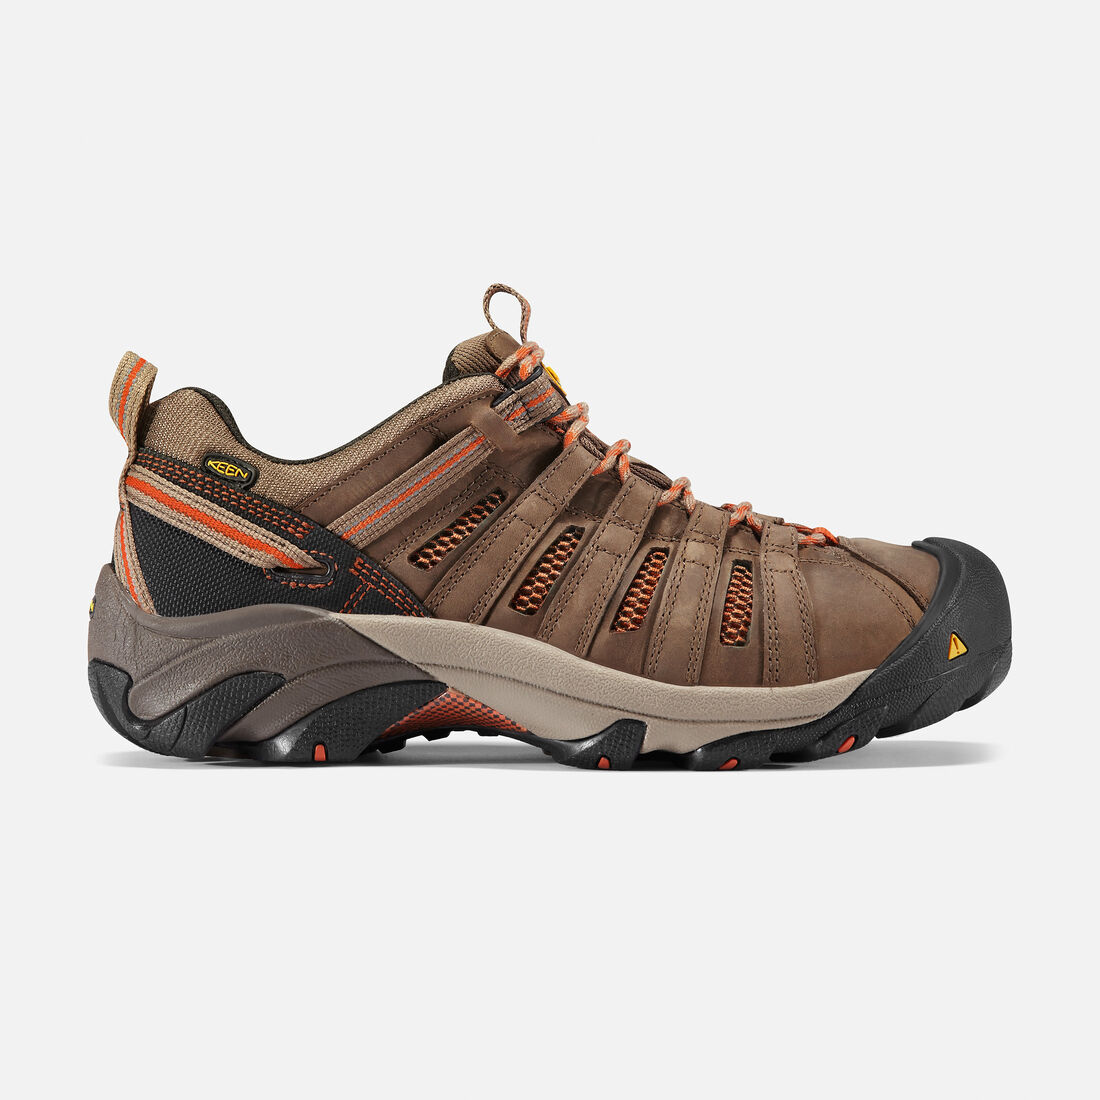 5871564c4f0 Men's Flint Low - Steel Toe Work Shoes | KEEN Footwear